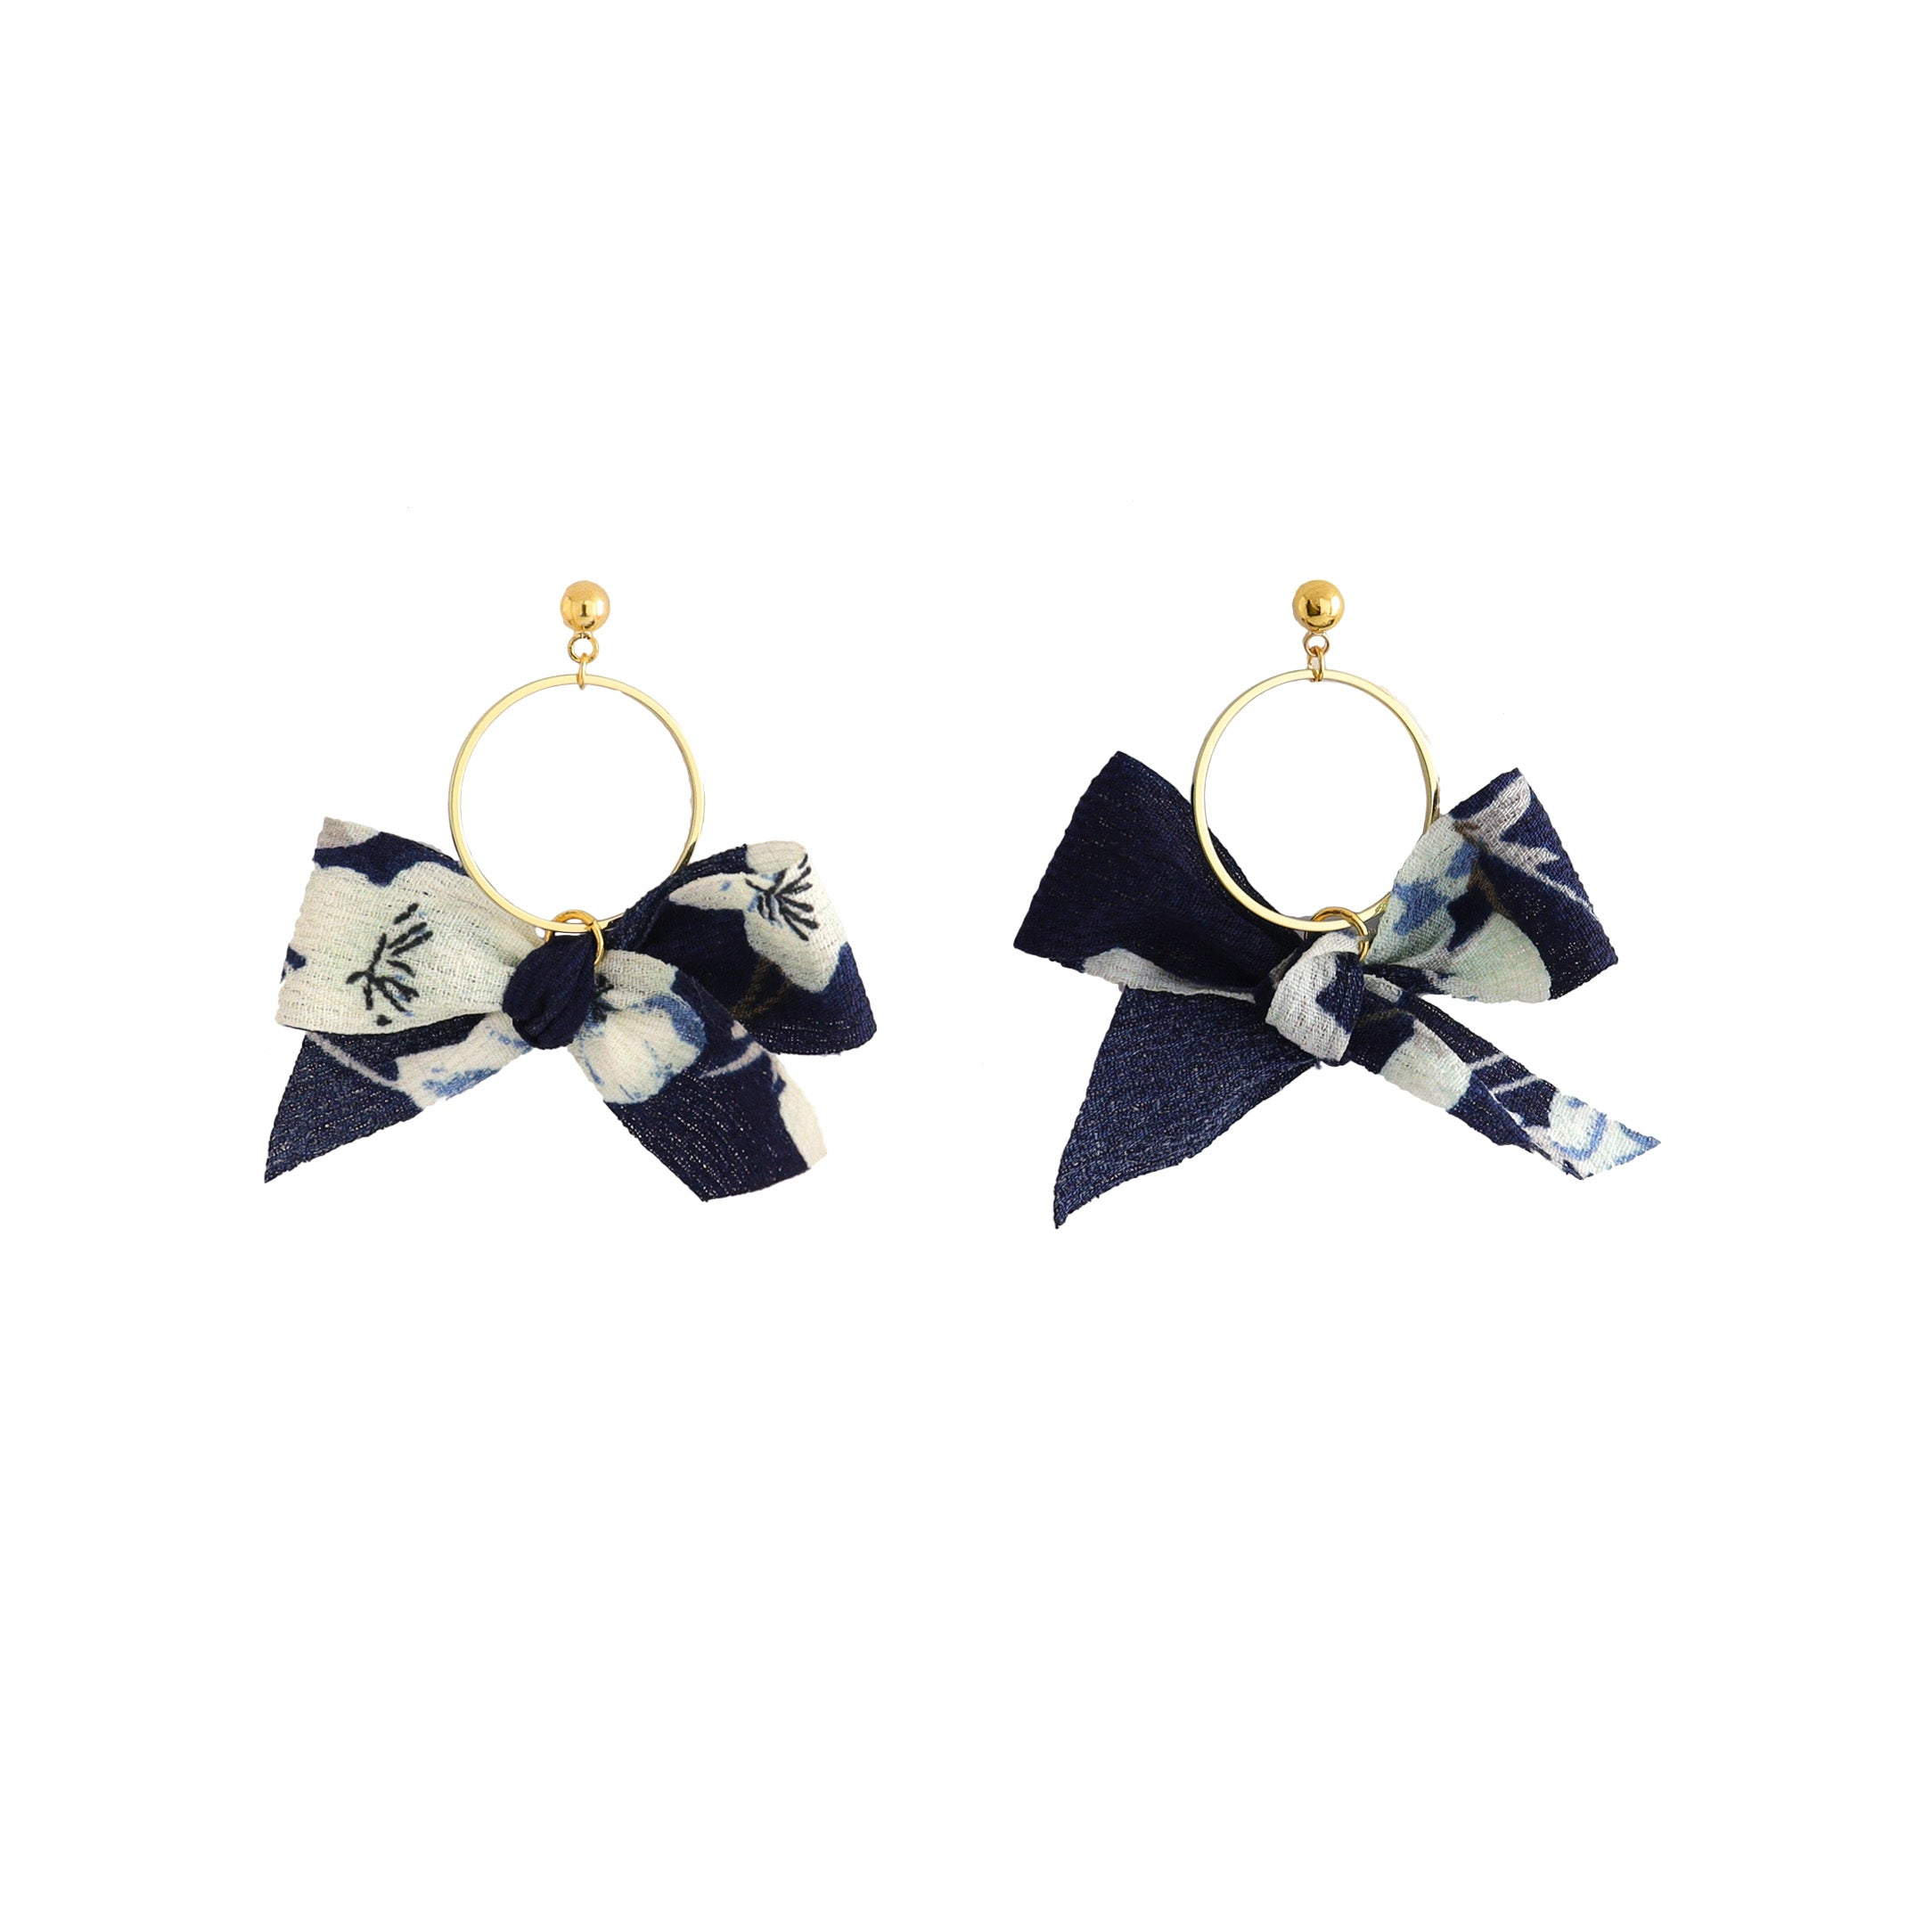 Kimono Ring Earrings